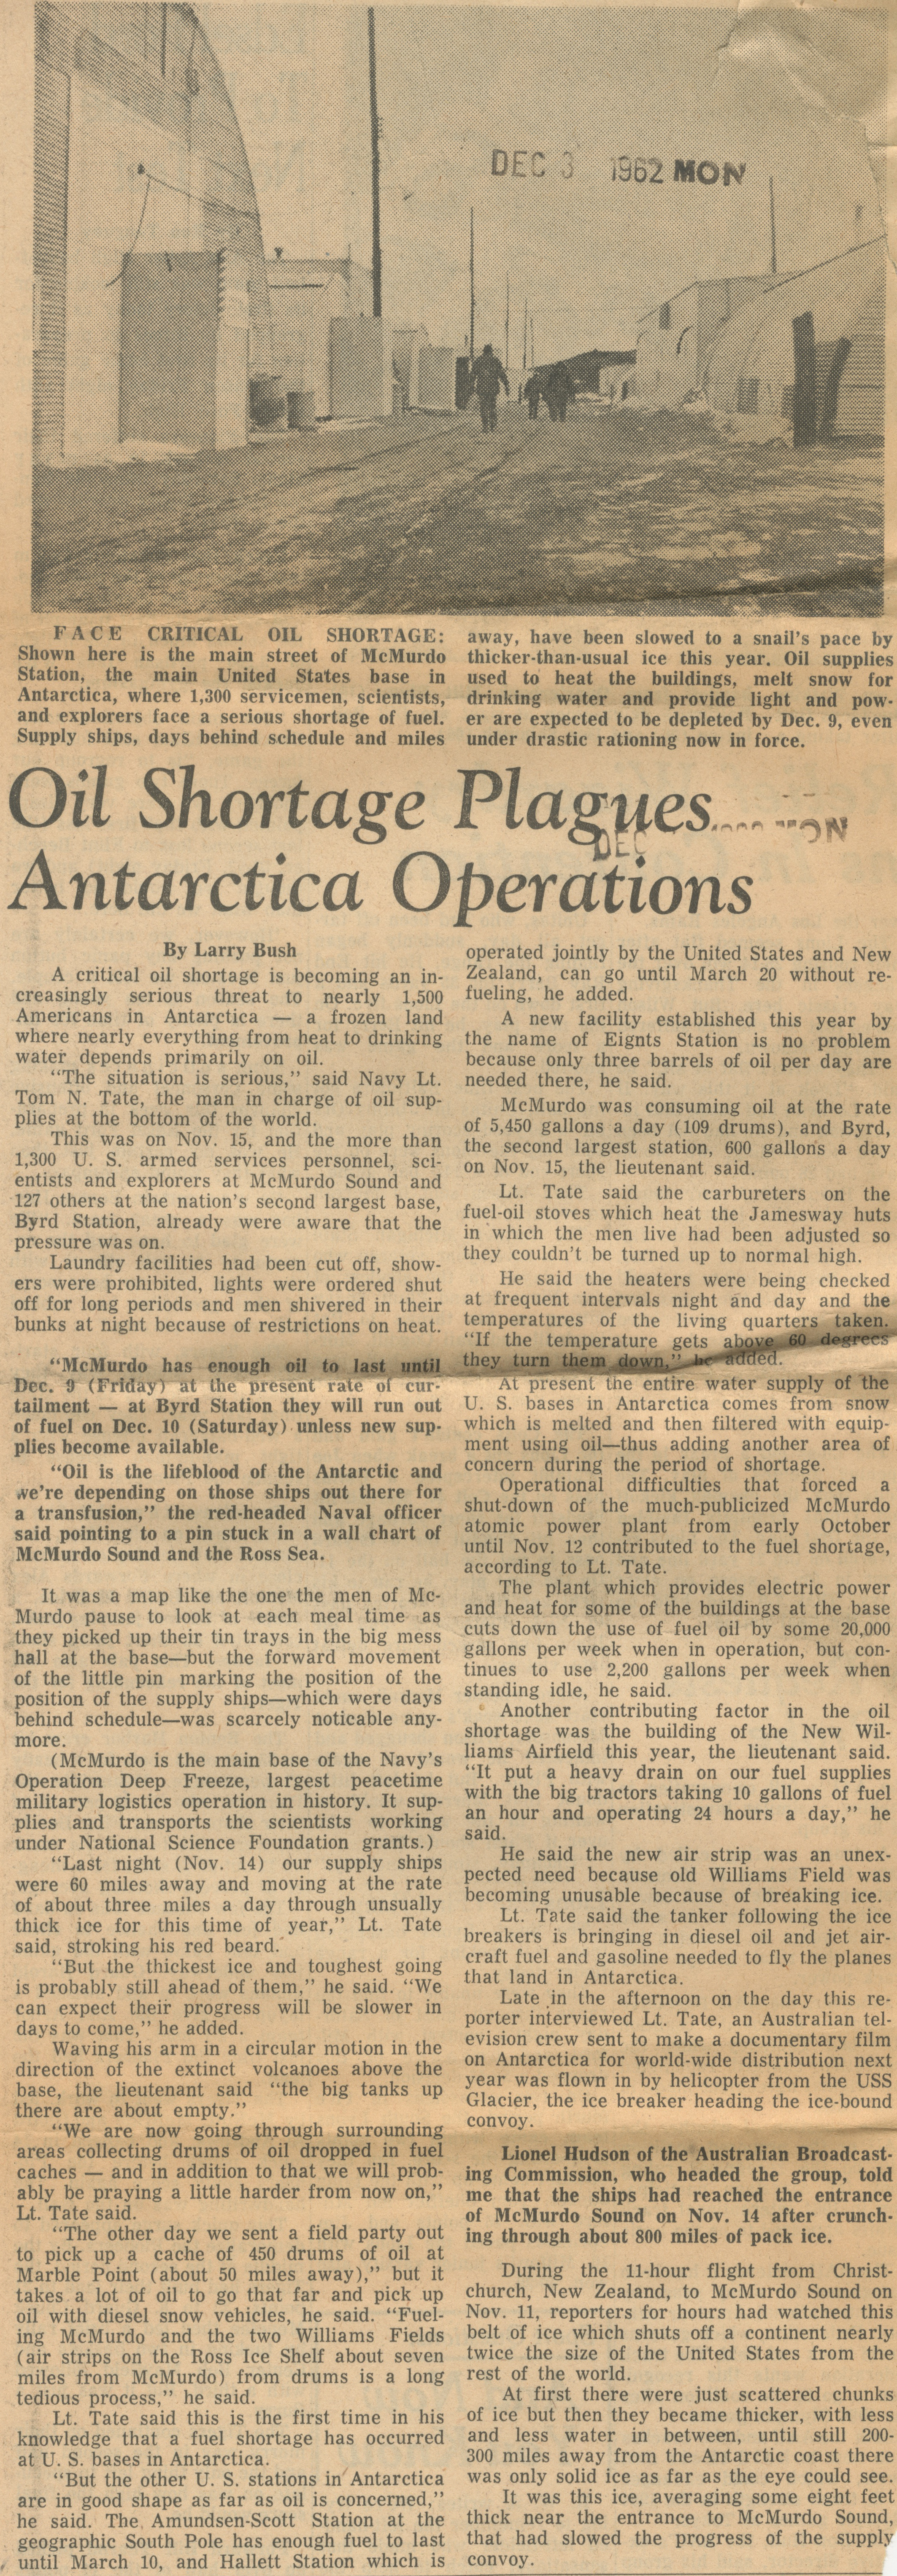 Oil Shortage Plagues Antarctica Operations image